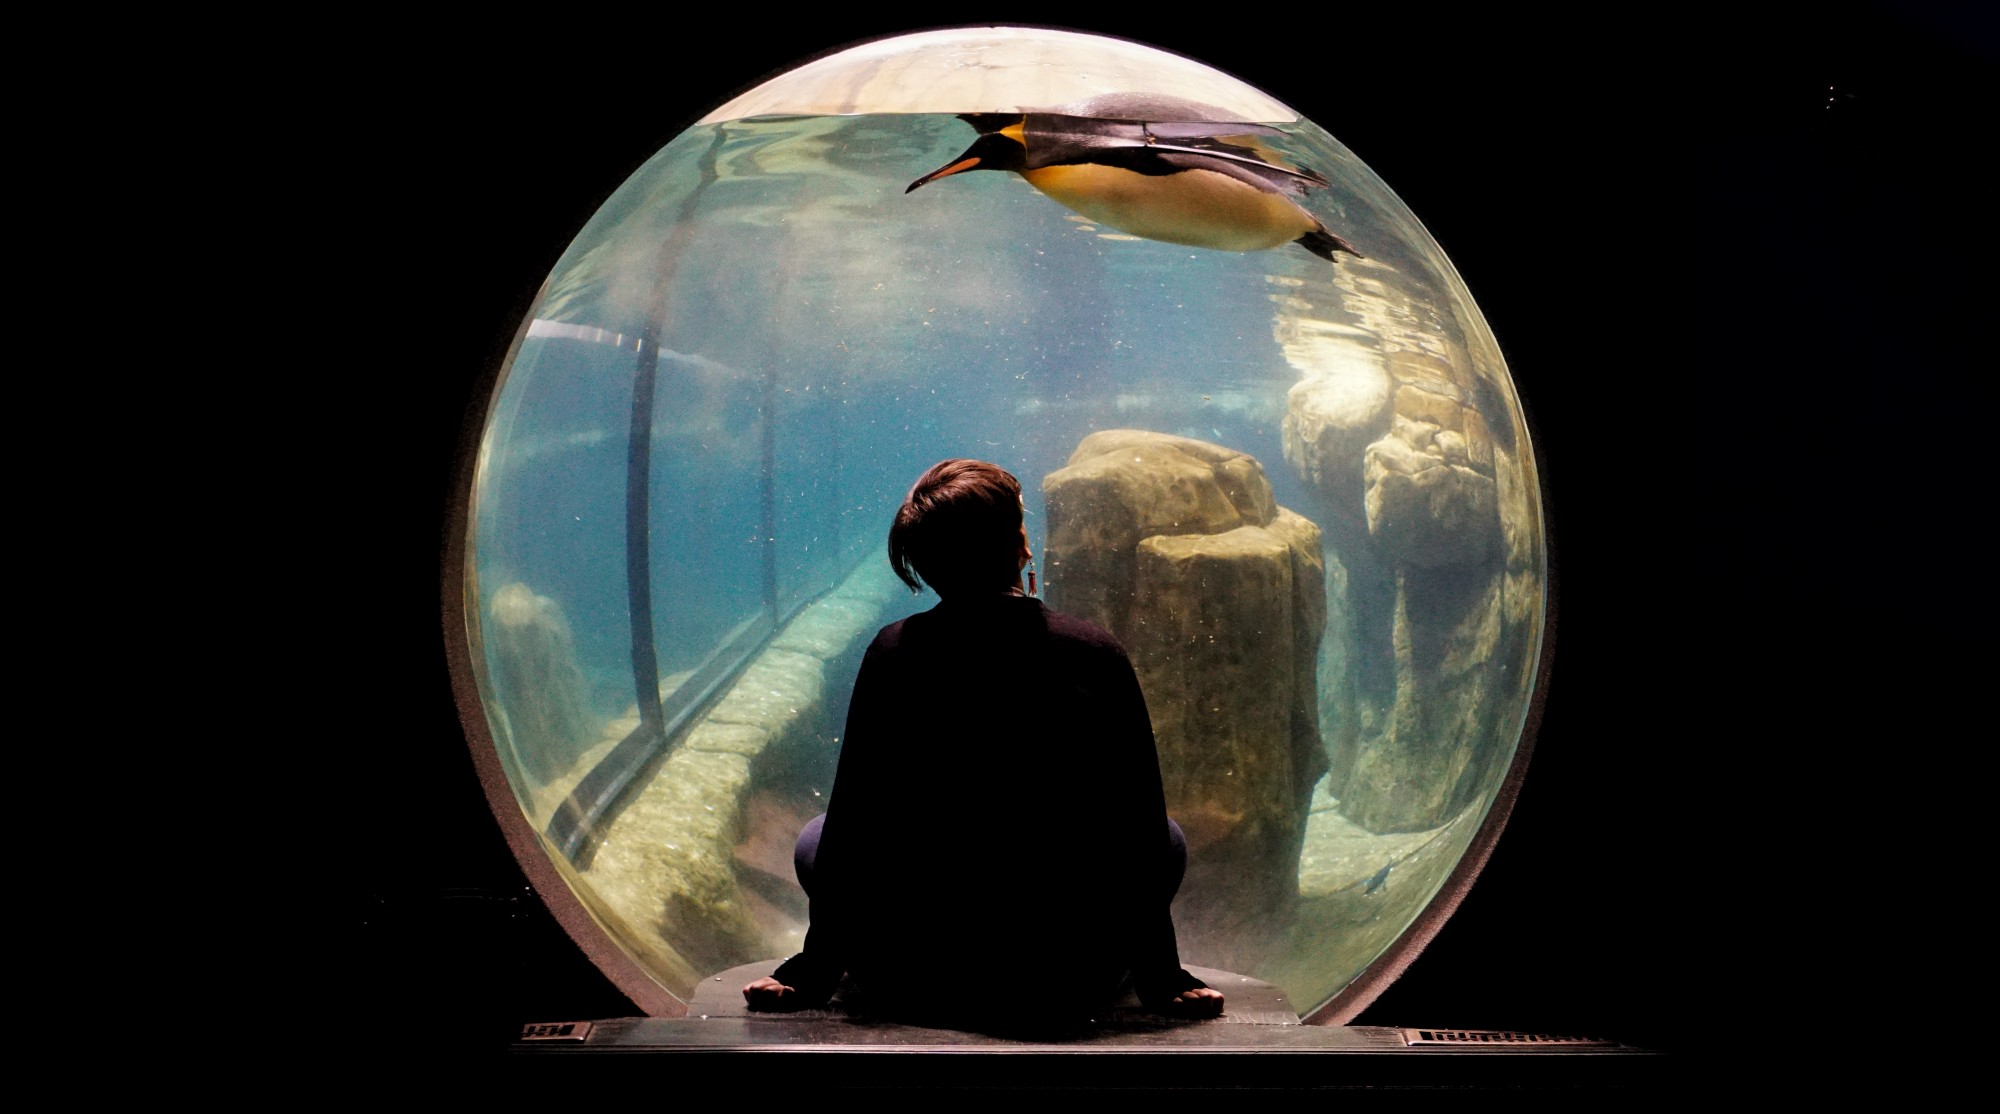 A lady sitting in a bubble looking at a Penguin swimming in water